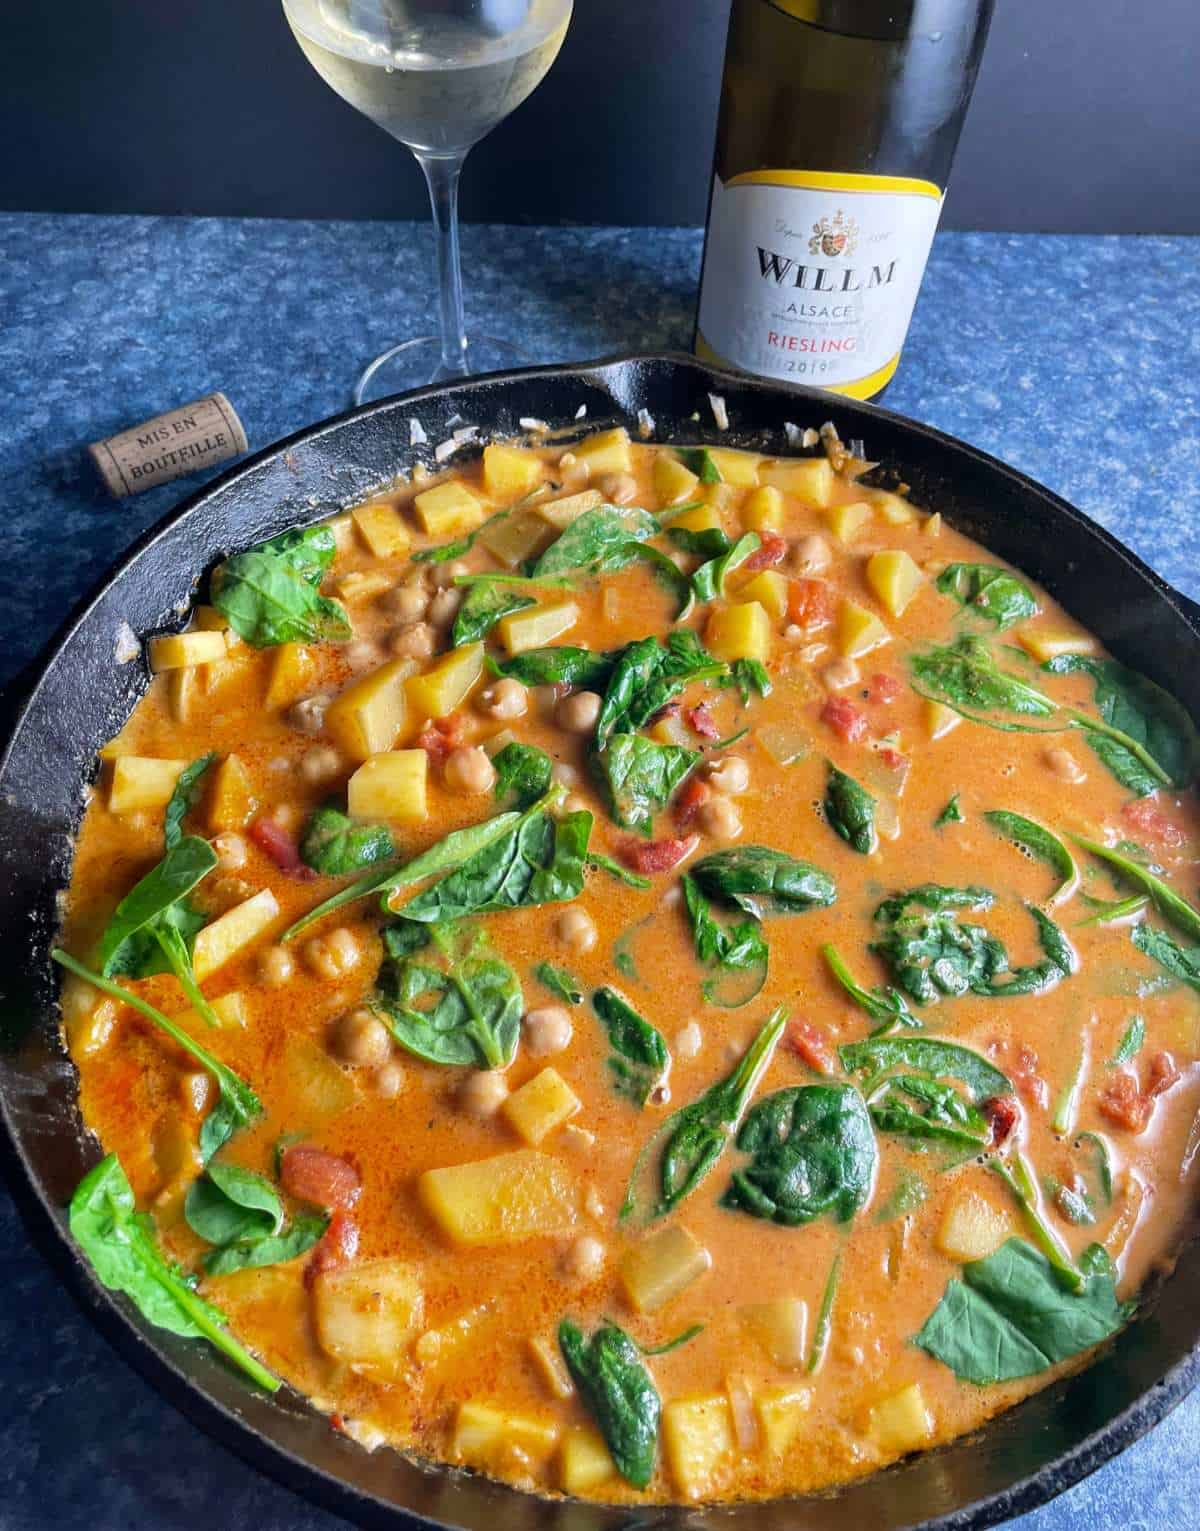 butternut squash chickpea curry in a large black skillet served with a Riesling white wine.